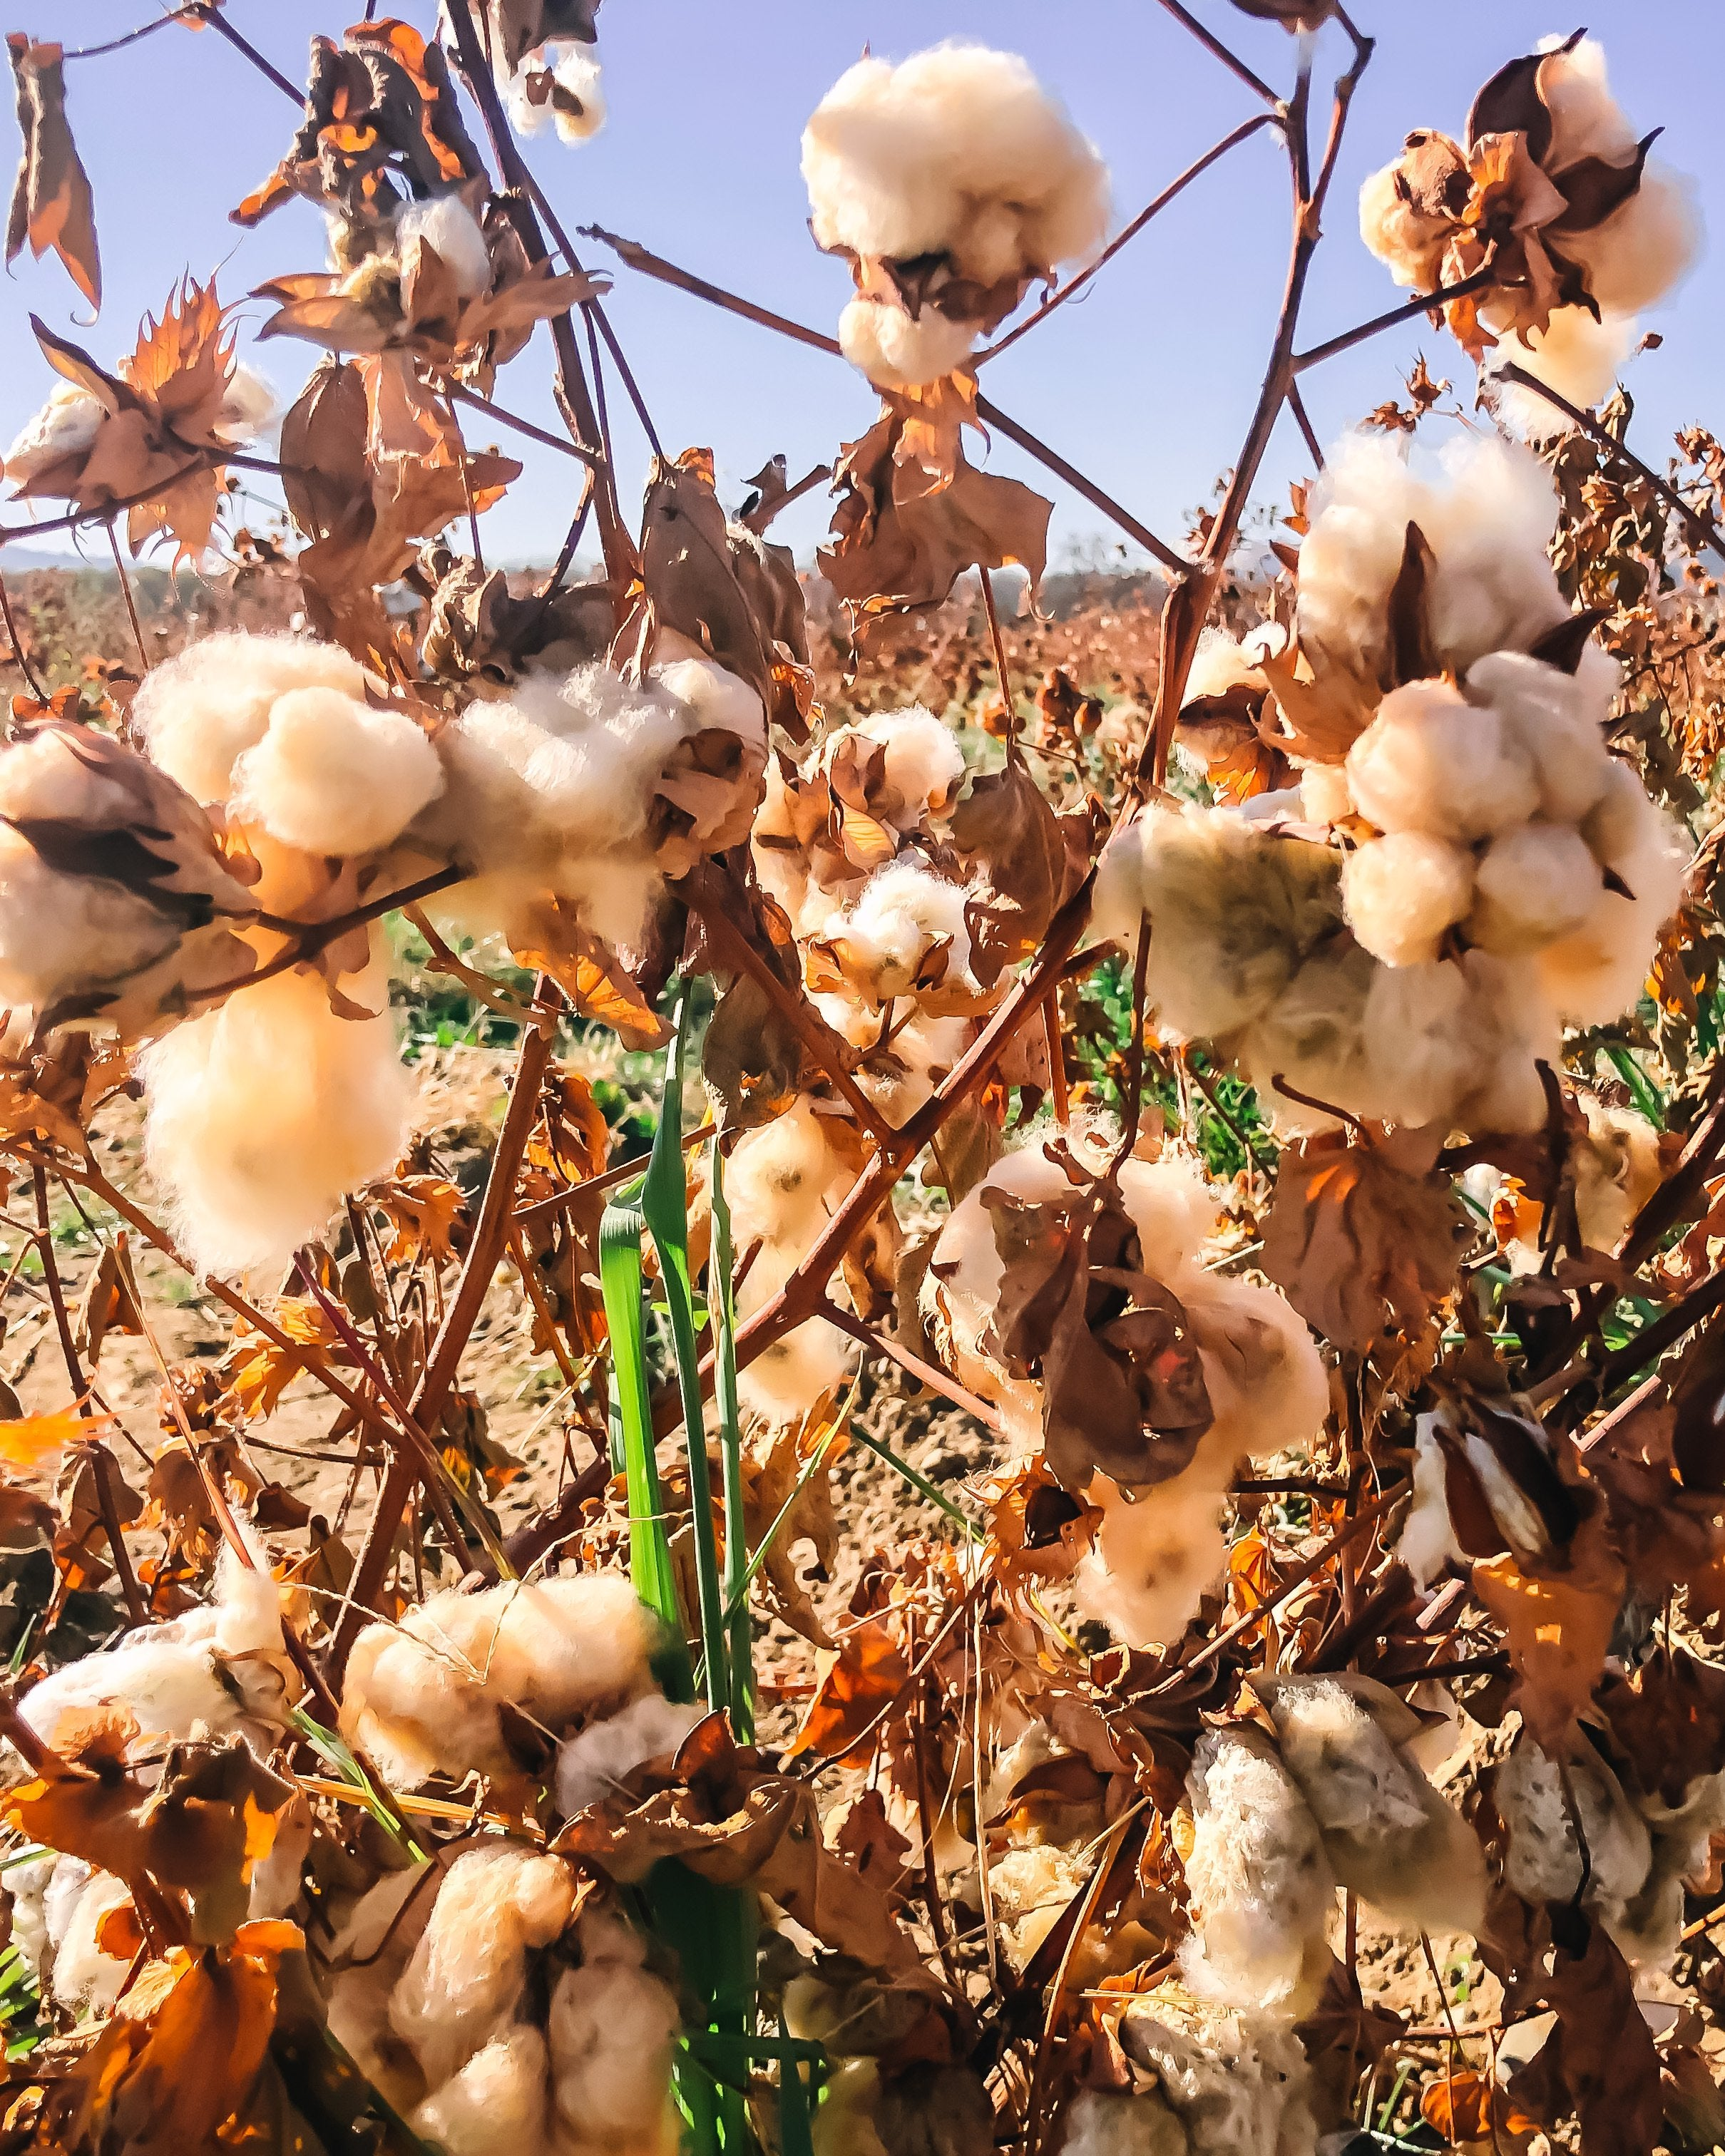 Danu-organic-cotton-linen-colorgrown-natural-undyed-cooperativelygrown-sustainable-ethical-regenerative-1